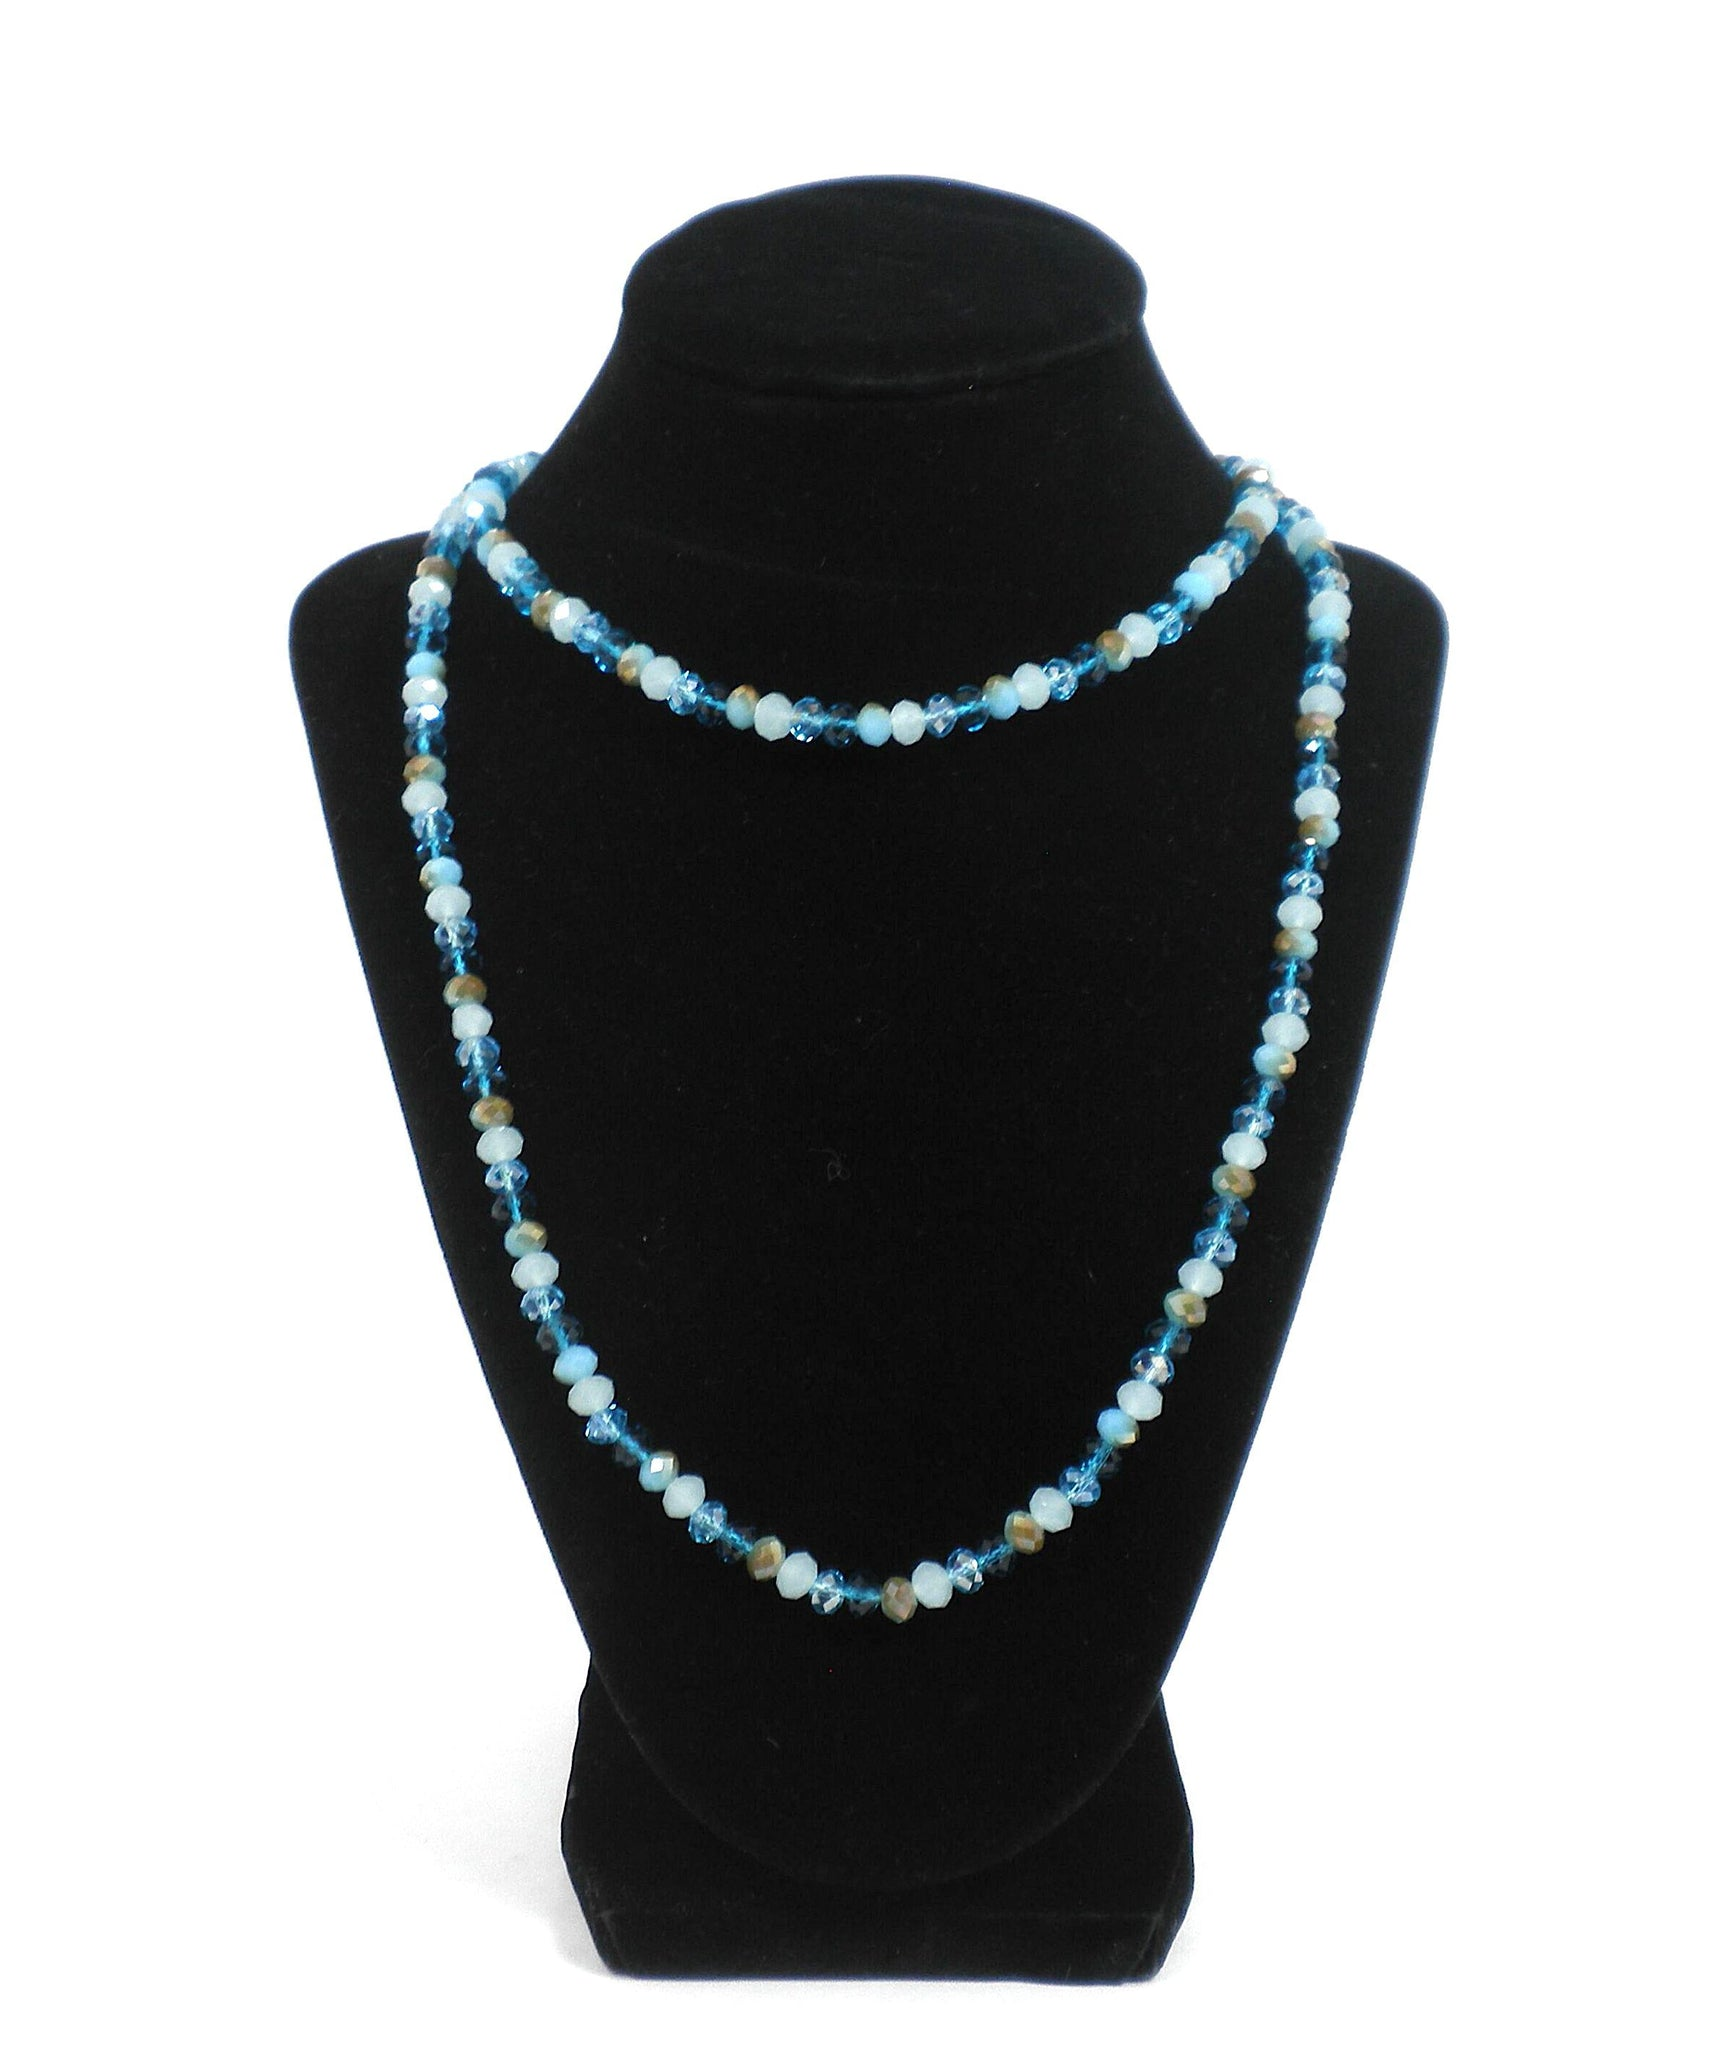 Long Multi-Colored Blue Beaded Necklace - The Fashion Foundation